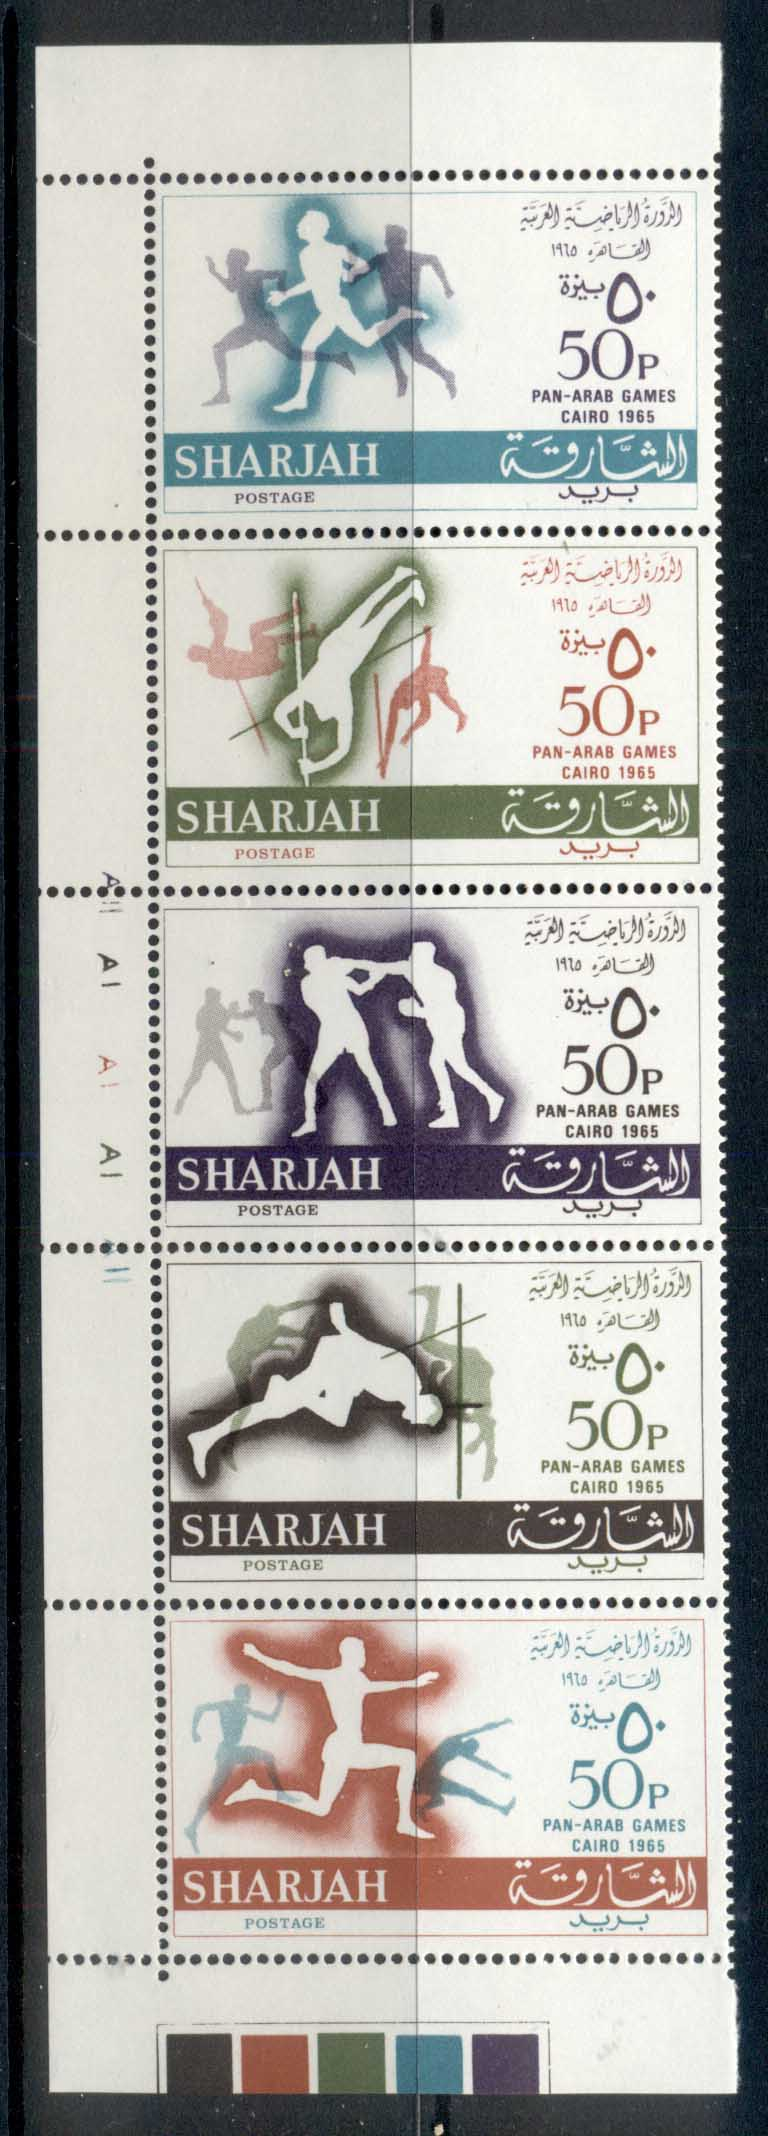 Sharjah 1965 Mi#193-197 Pan Arab Games str5 MUH